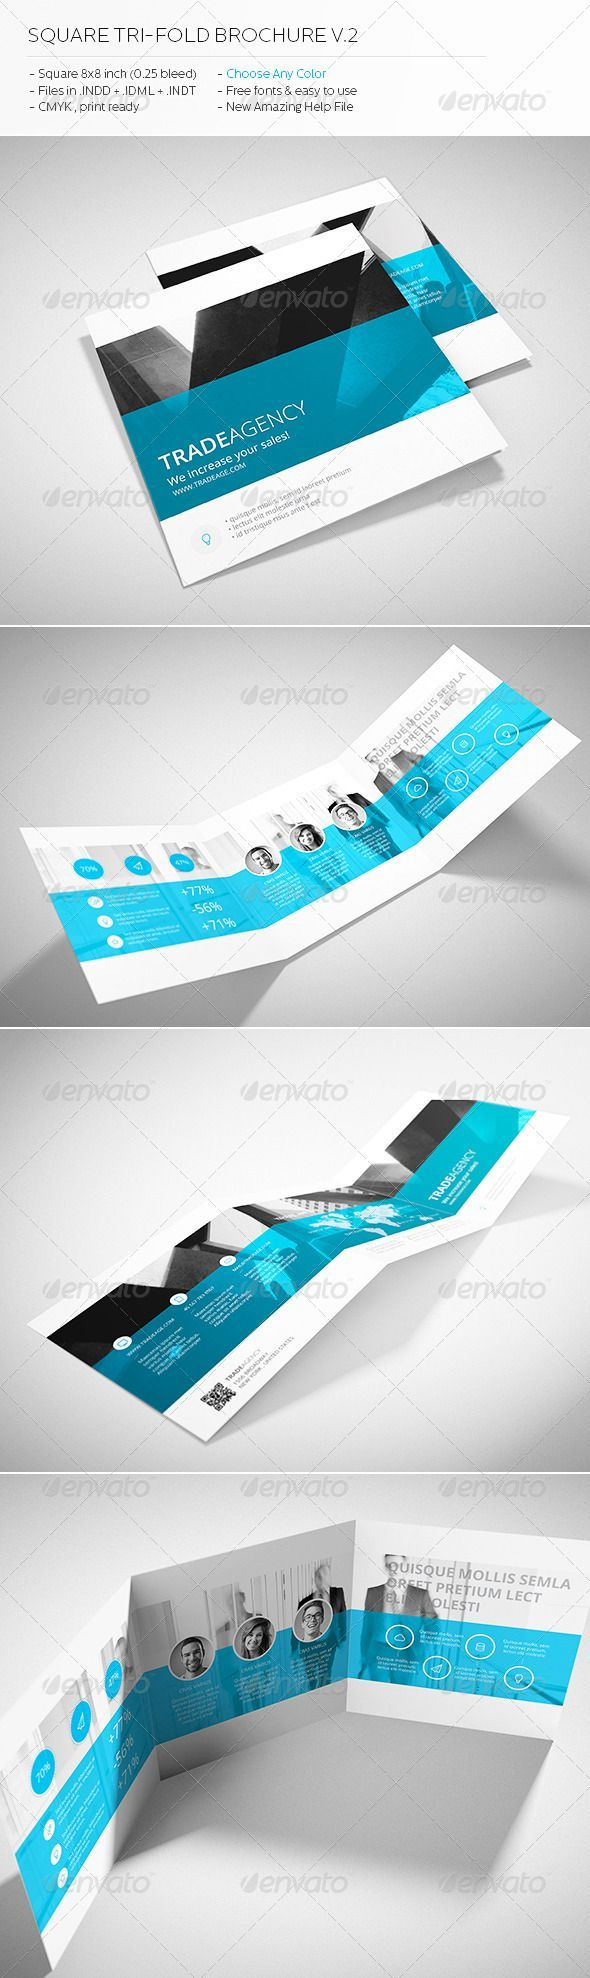 one fold brochure template - 17 best images about report cover design on pinterest